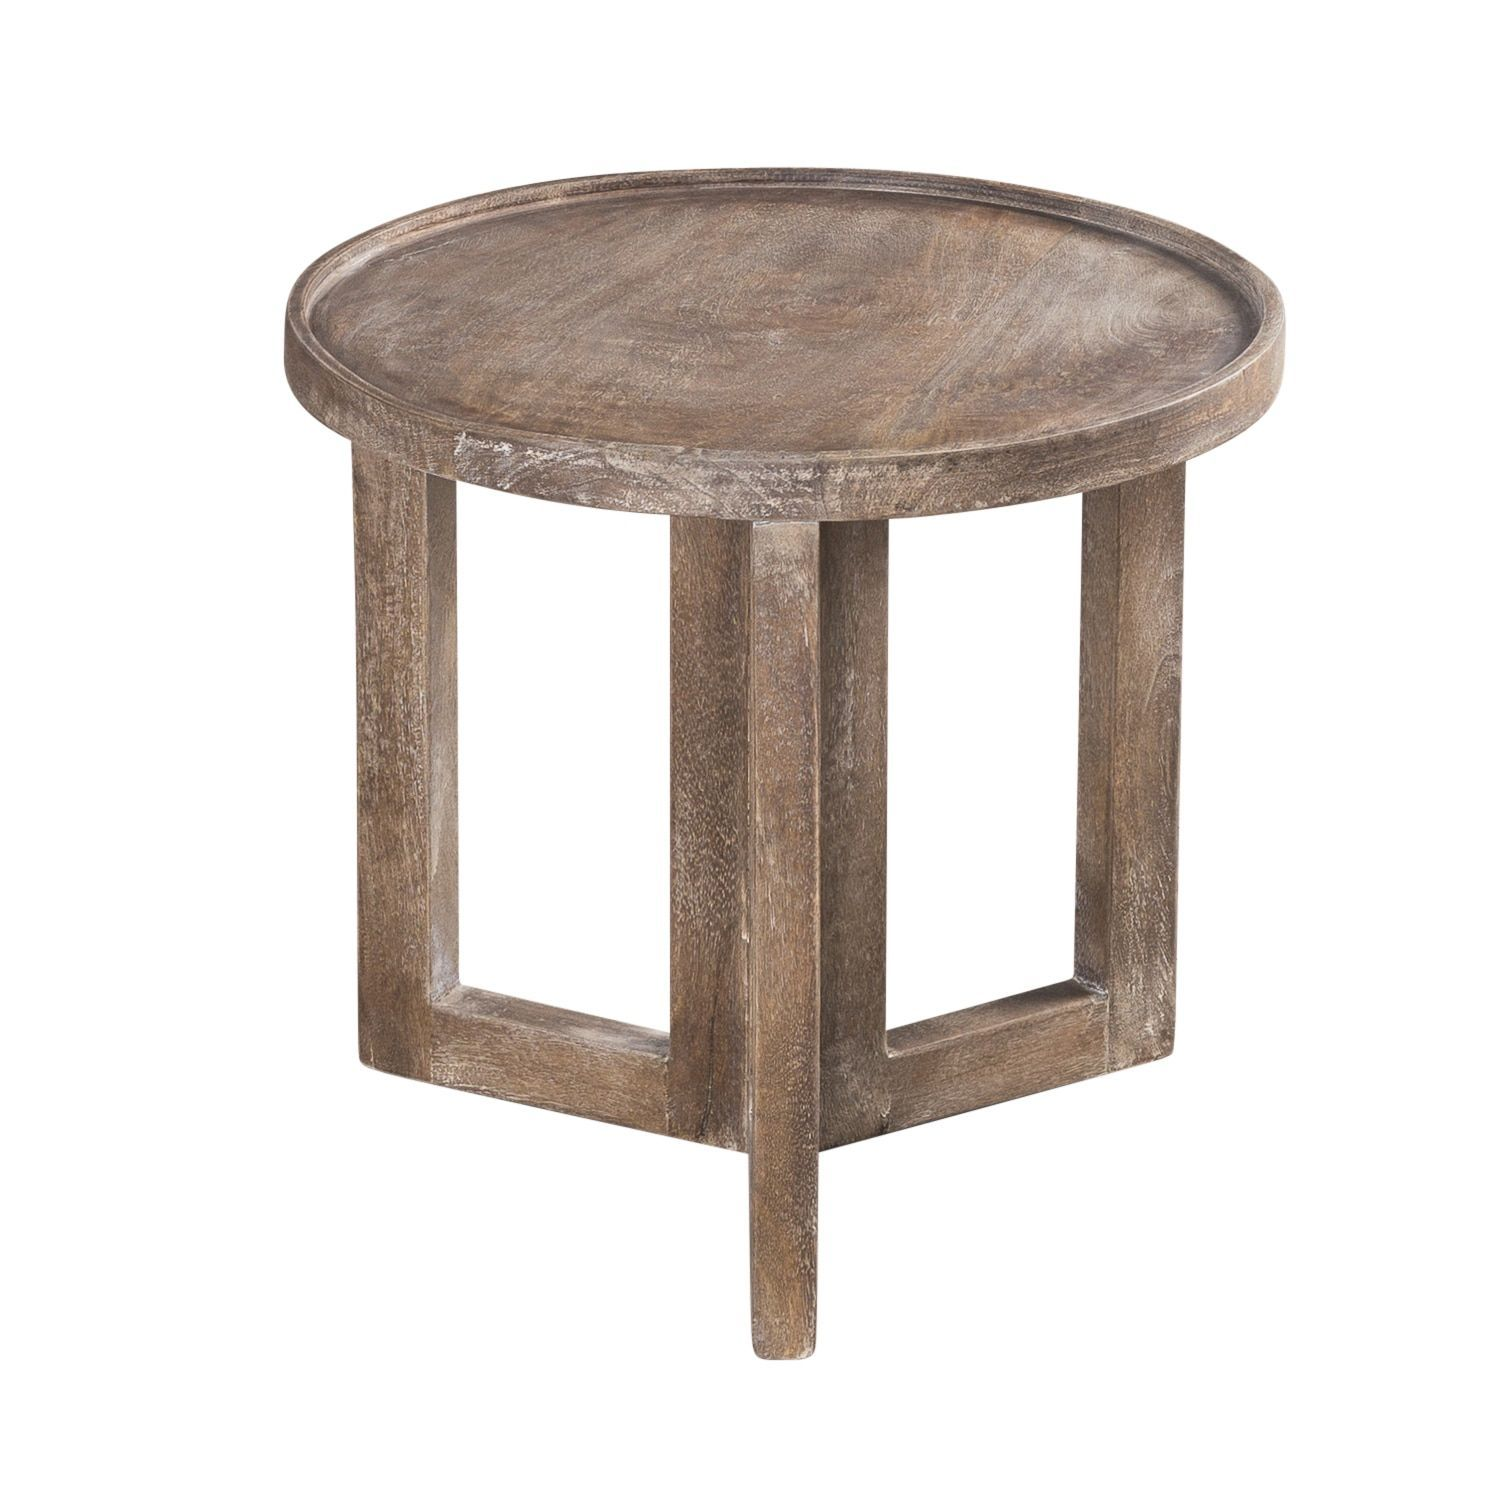 diy end wood unfinished small bedside table large oak black accent round distressed astonishing antique pedestal tables full size outdoor and chairs cedarwood furniture unique